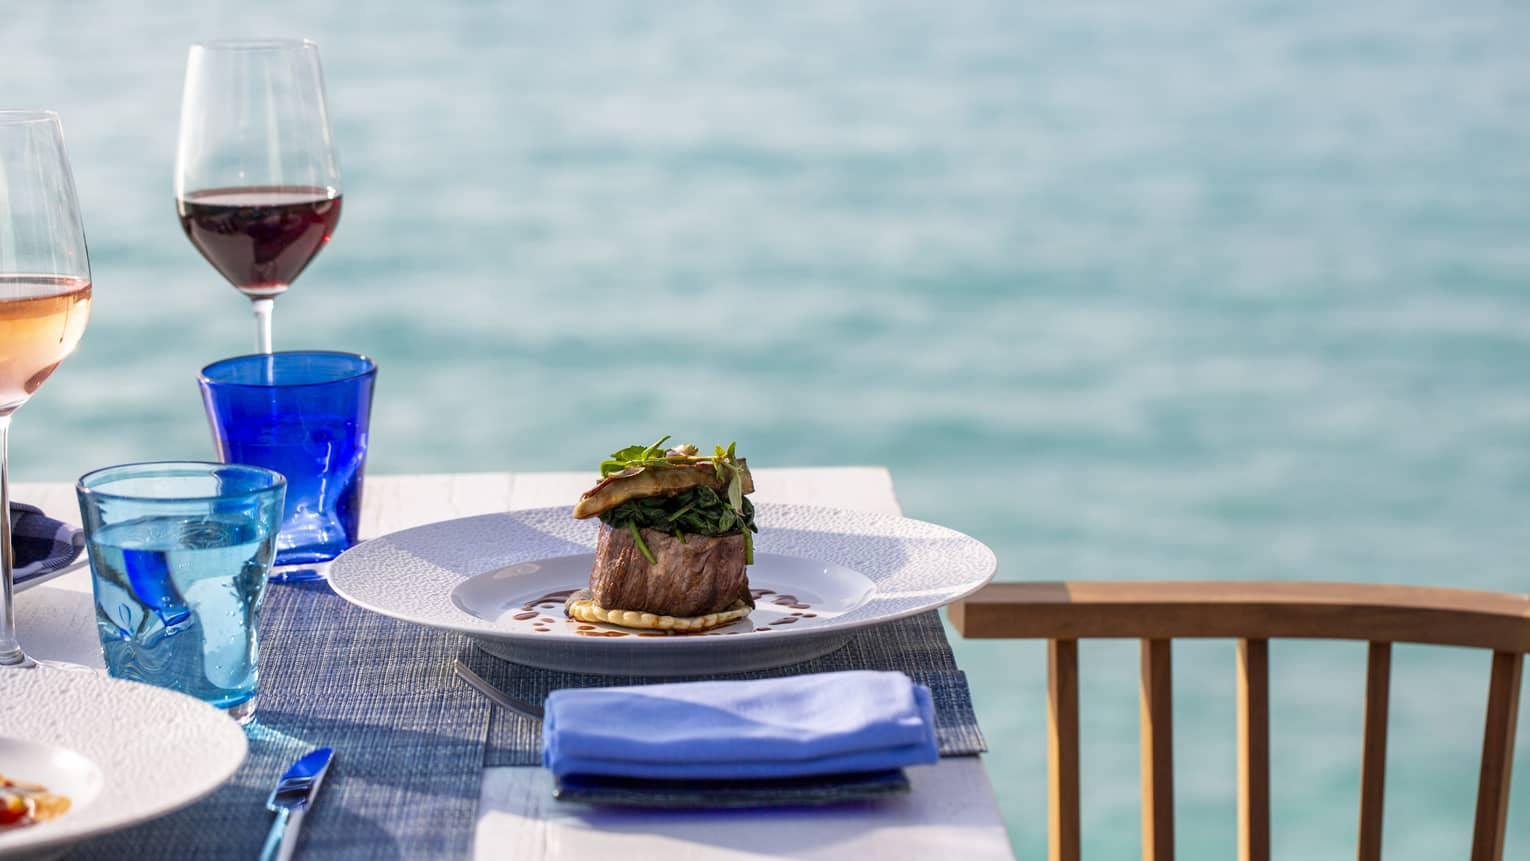 A table with a glass of red wine and a beef dish overlooking the ocean at Four Seasons Maldives - Landa